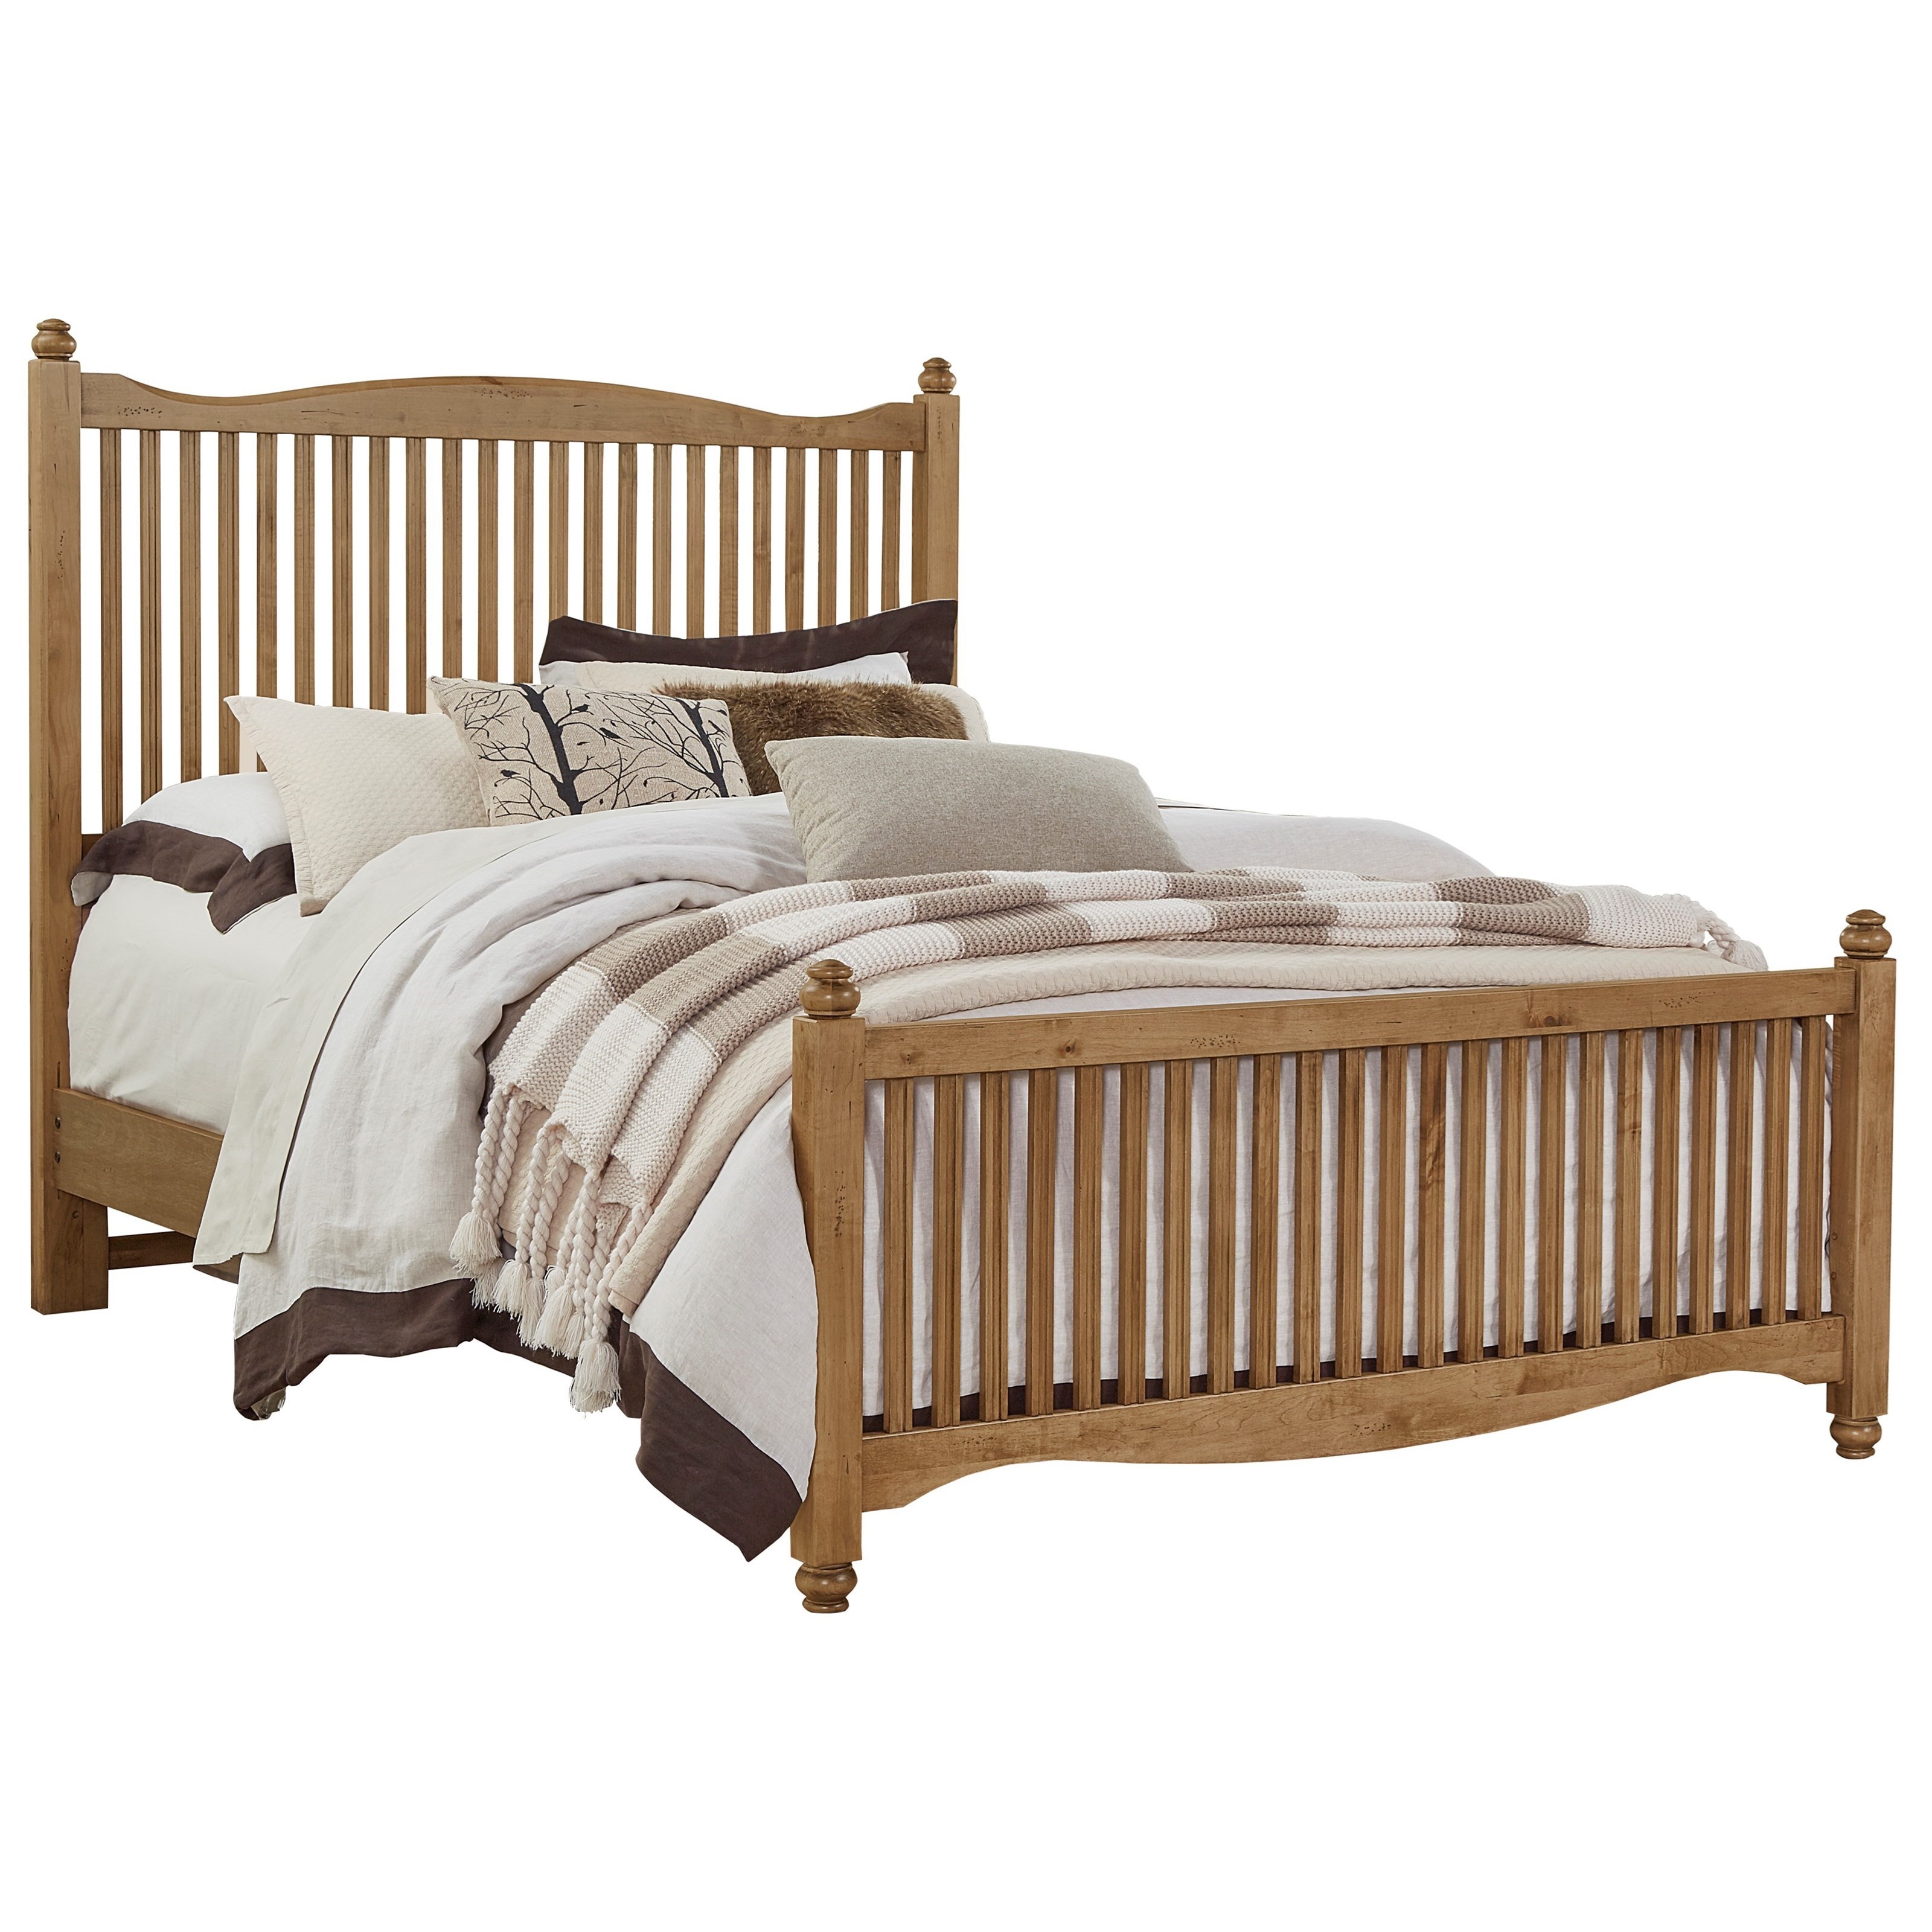 Vaughan Bassett American Maple Solid Wood Queen Slat Bed Johnny Janosik Panel Beds